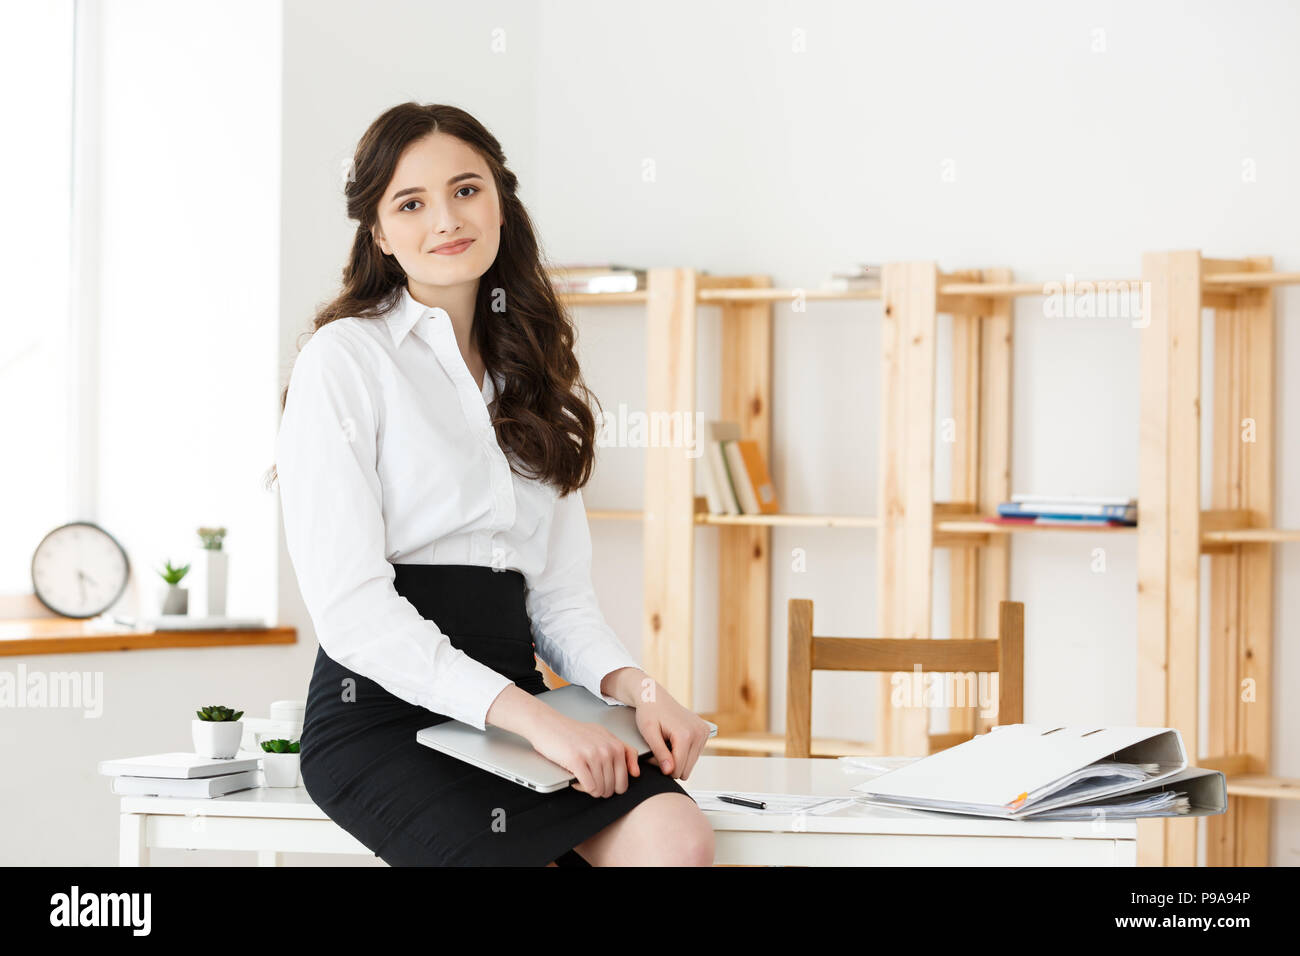 Happy young business woman ou secretary holding document dans modern office Photo Stock